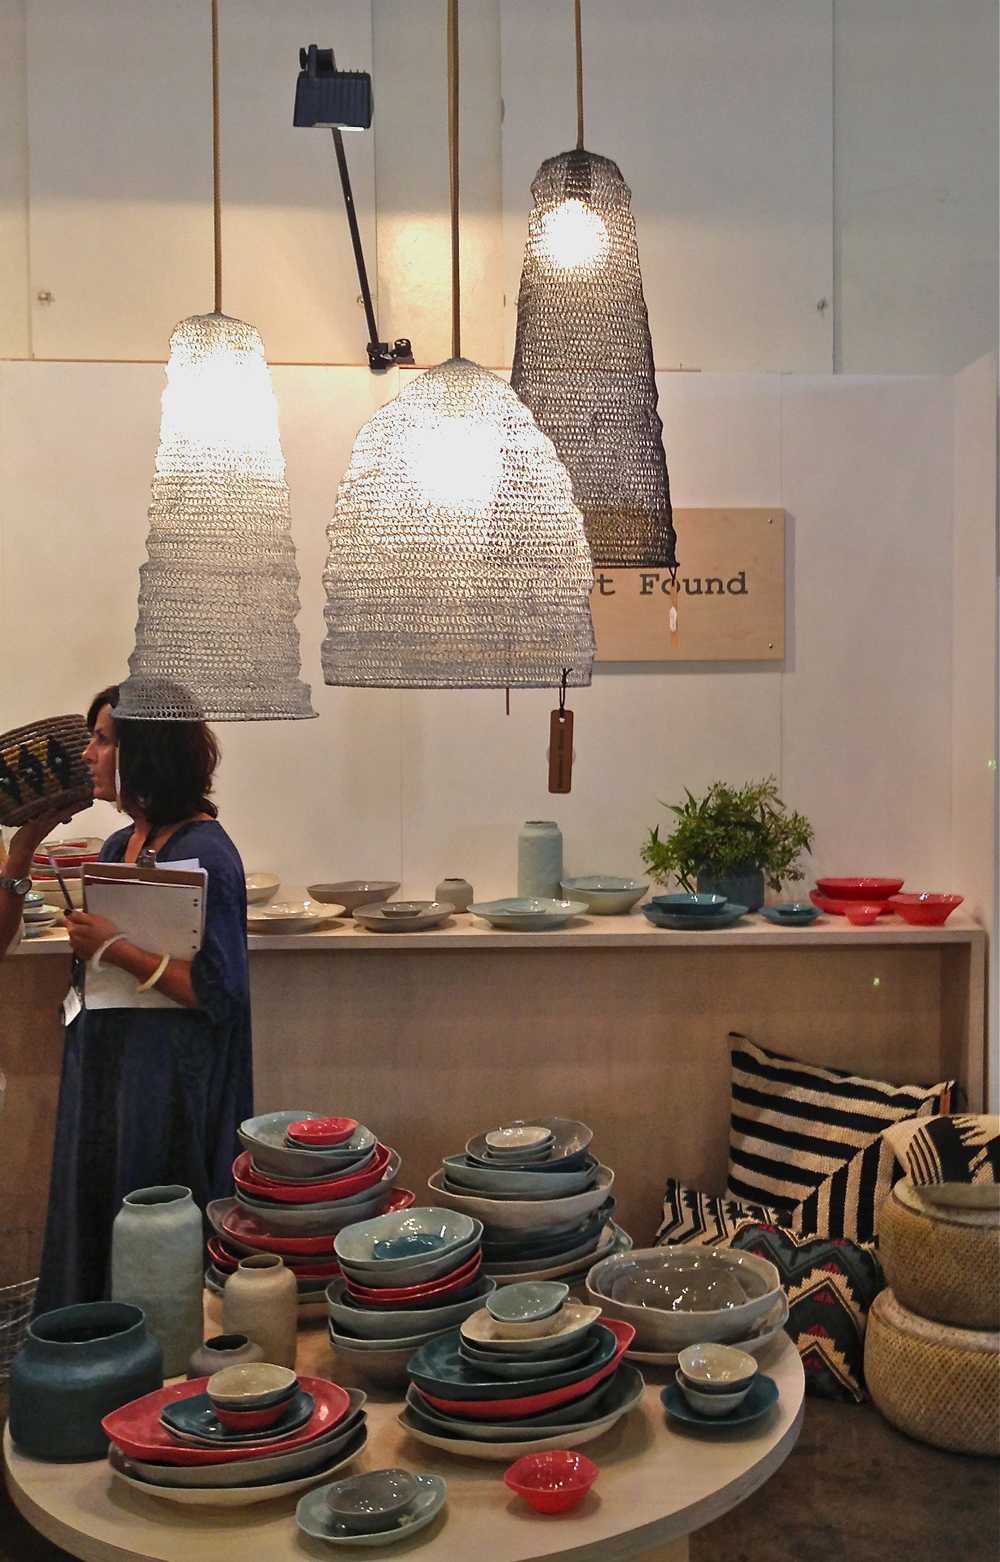 Delicate and textural, these net pendants and handmade bowls and vessels really caught our eye.